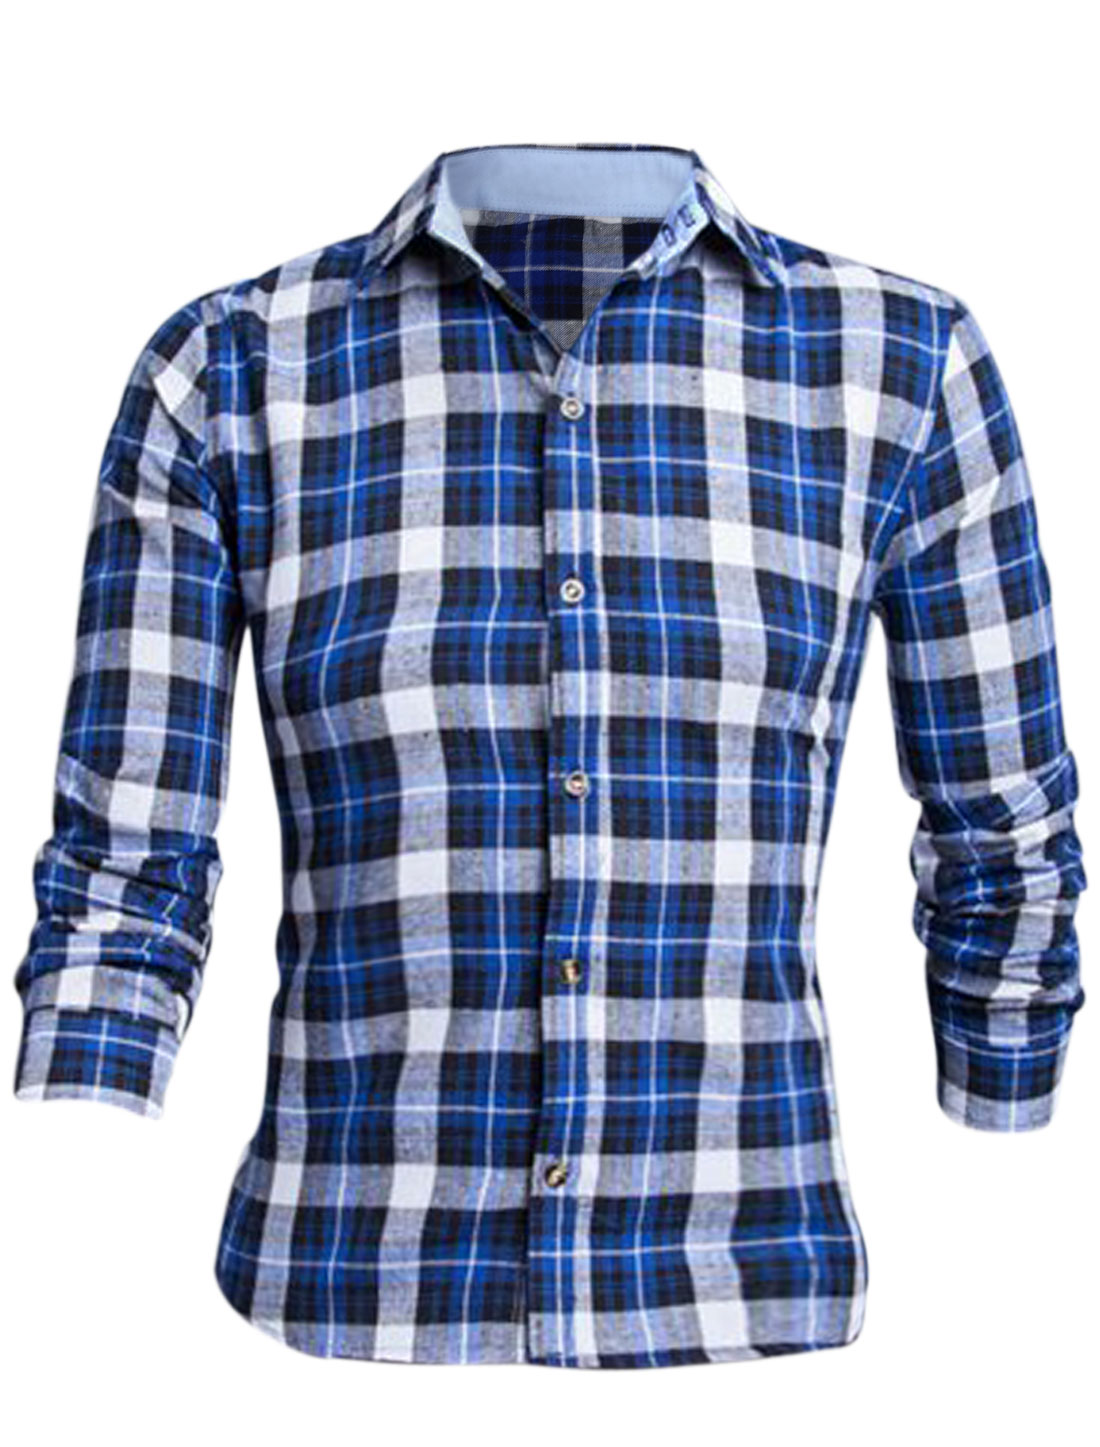 Men Royal Blue Long Sleeves Single Breasted Plaids Slim Fit Leisure Shirt M